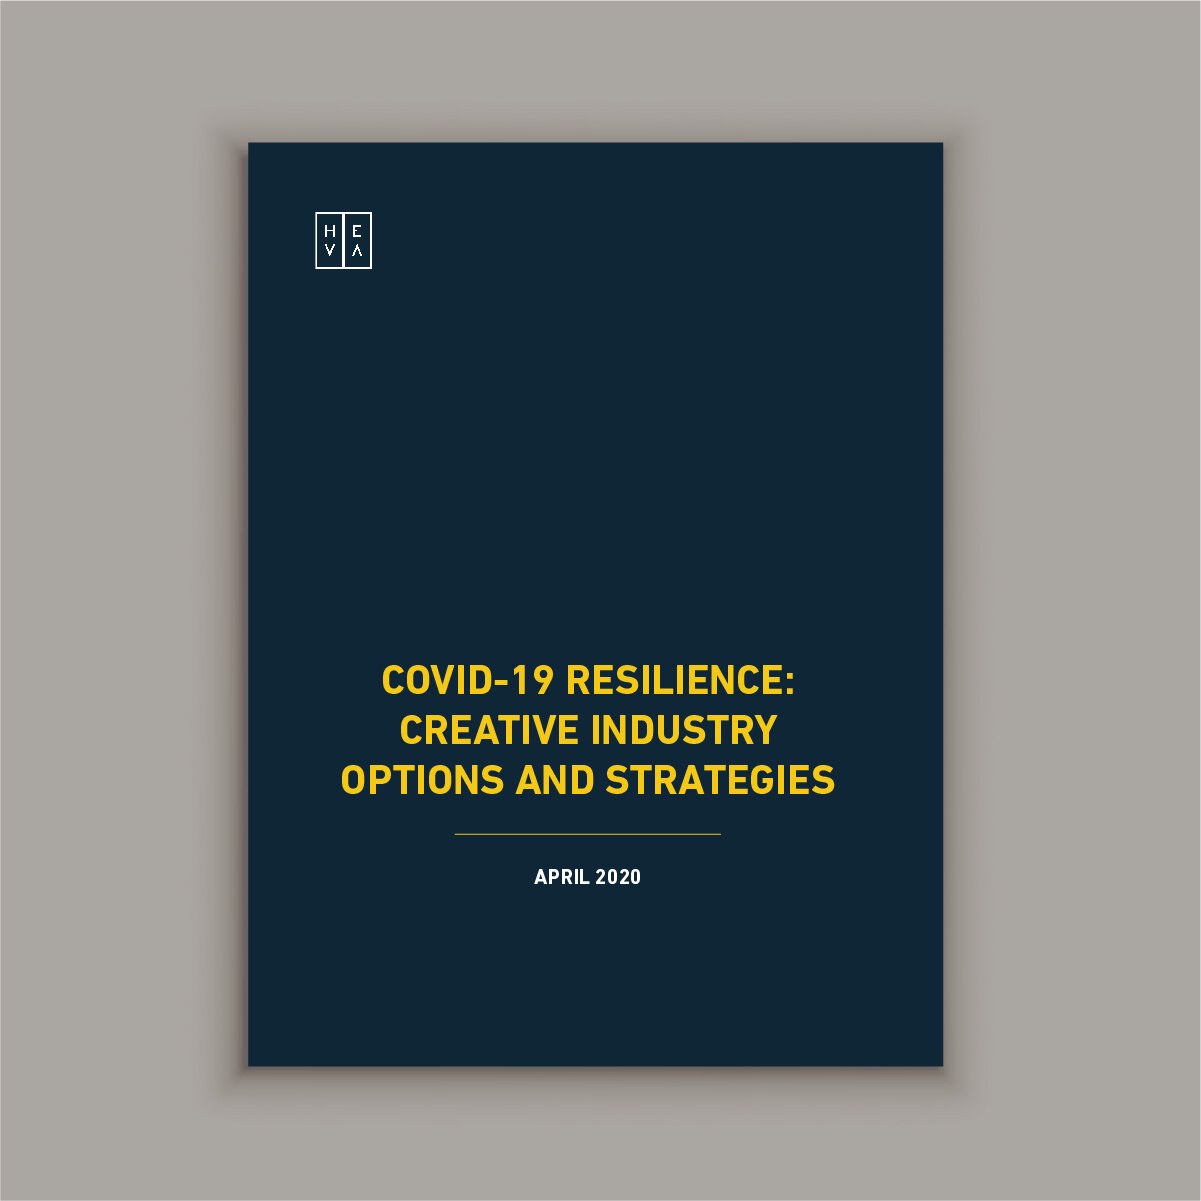 COVID-19 Resilience: Creative Industry Options and Strategies